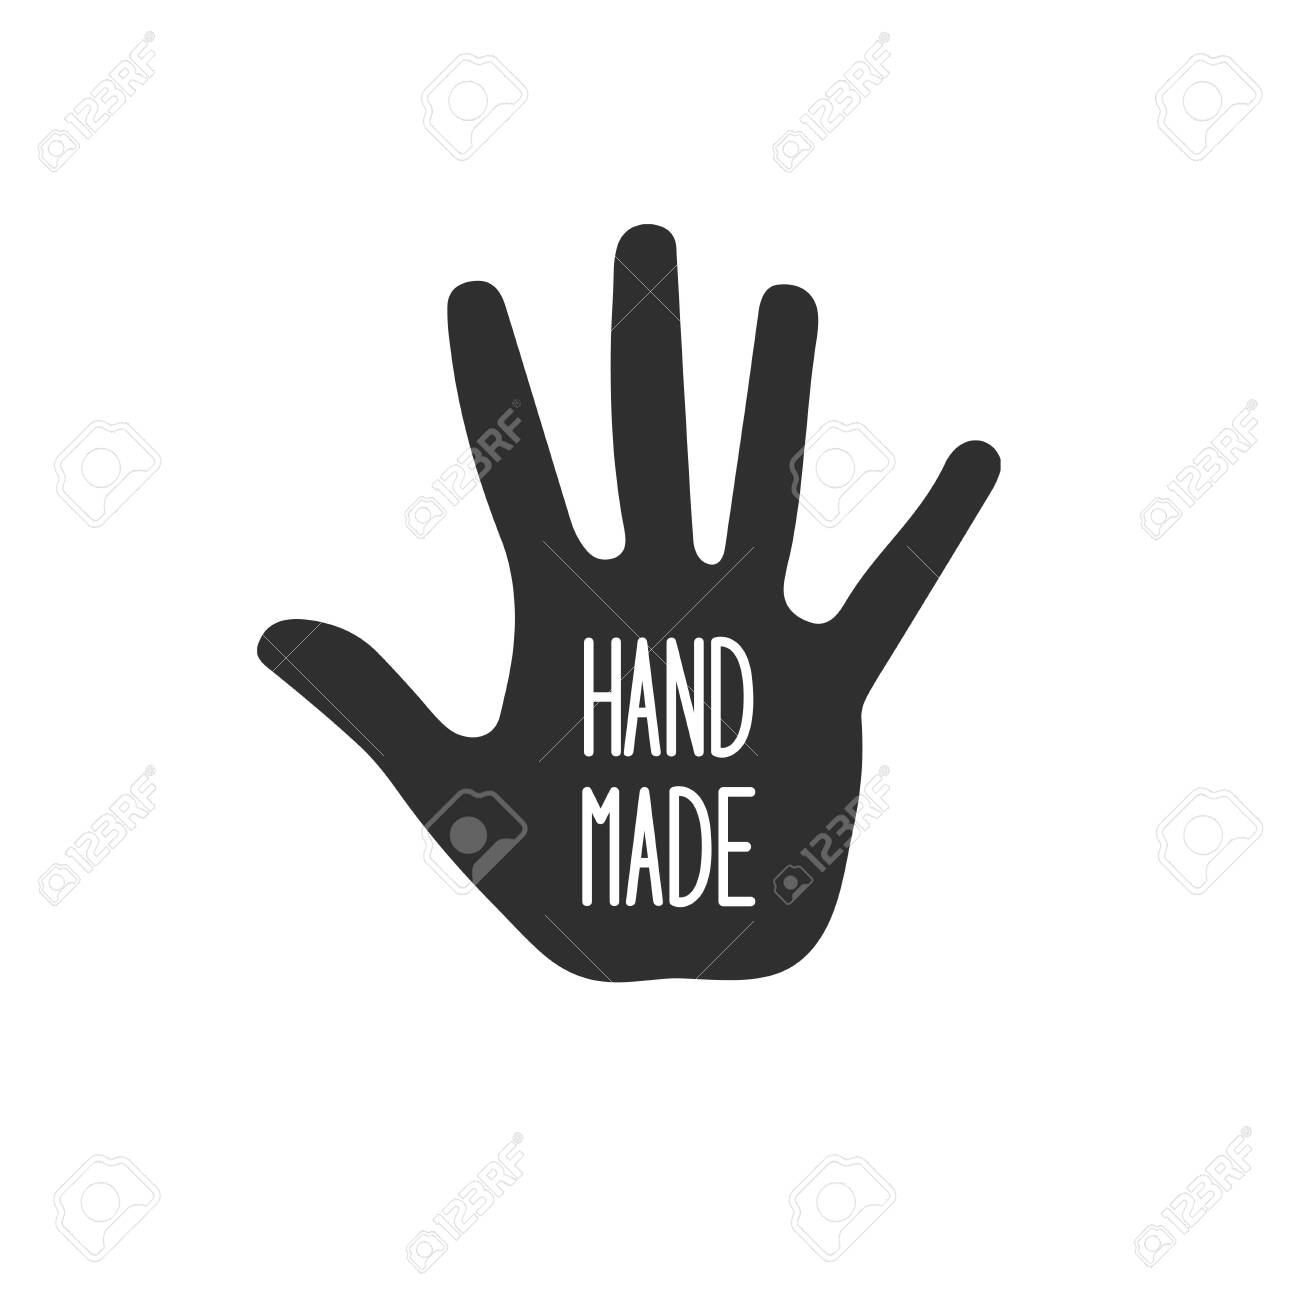 Hand made with hand silhouette on white - 141031908